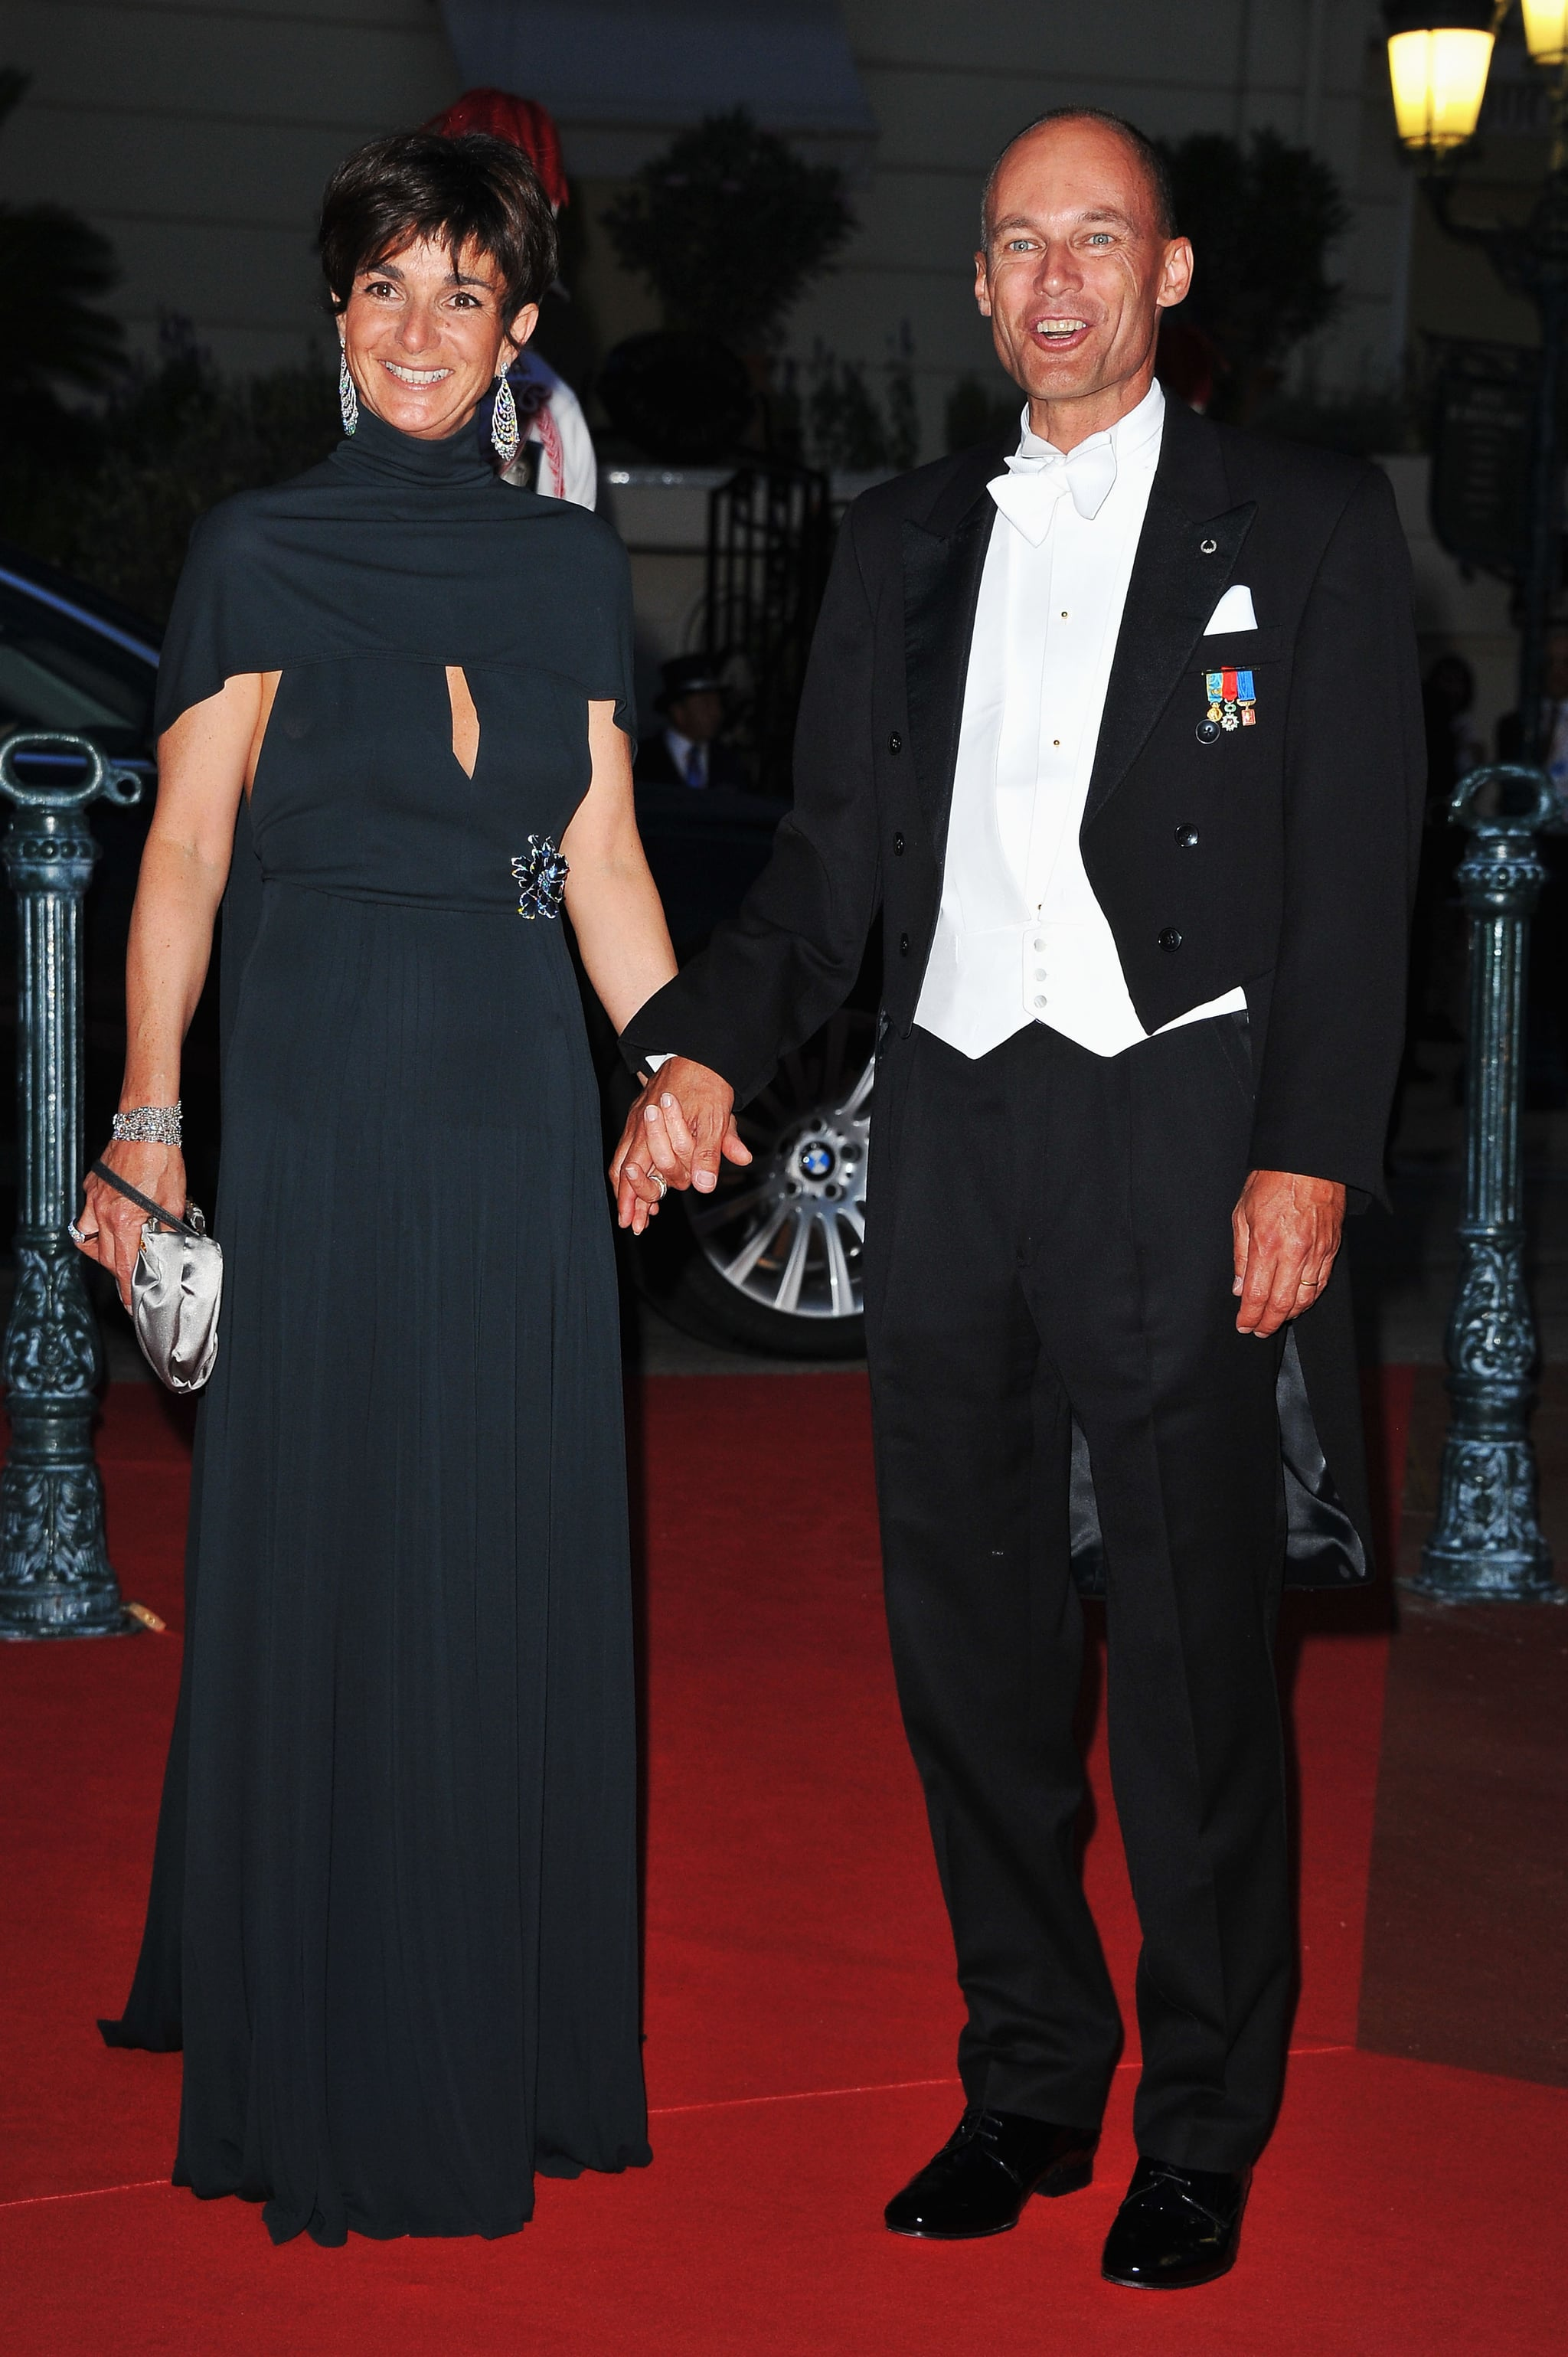 Bertrand Piccard with his wife, Michelle, attended a dinner at Opera terraces after the religious wedding ceremony of Prince Albert II of Monaco and Princess Charlene of Monaco.